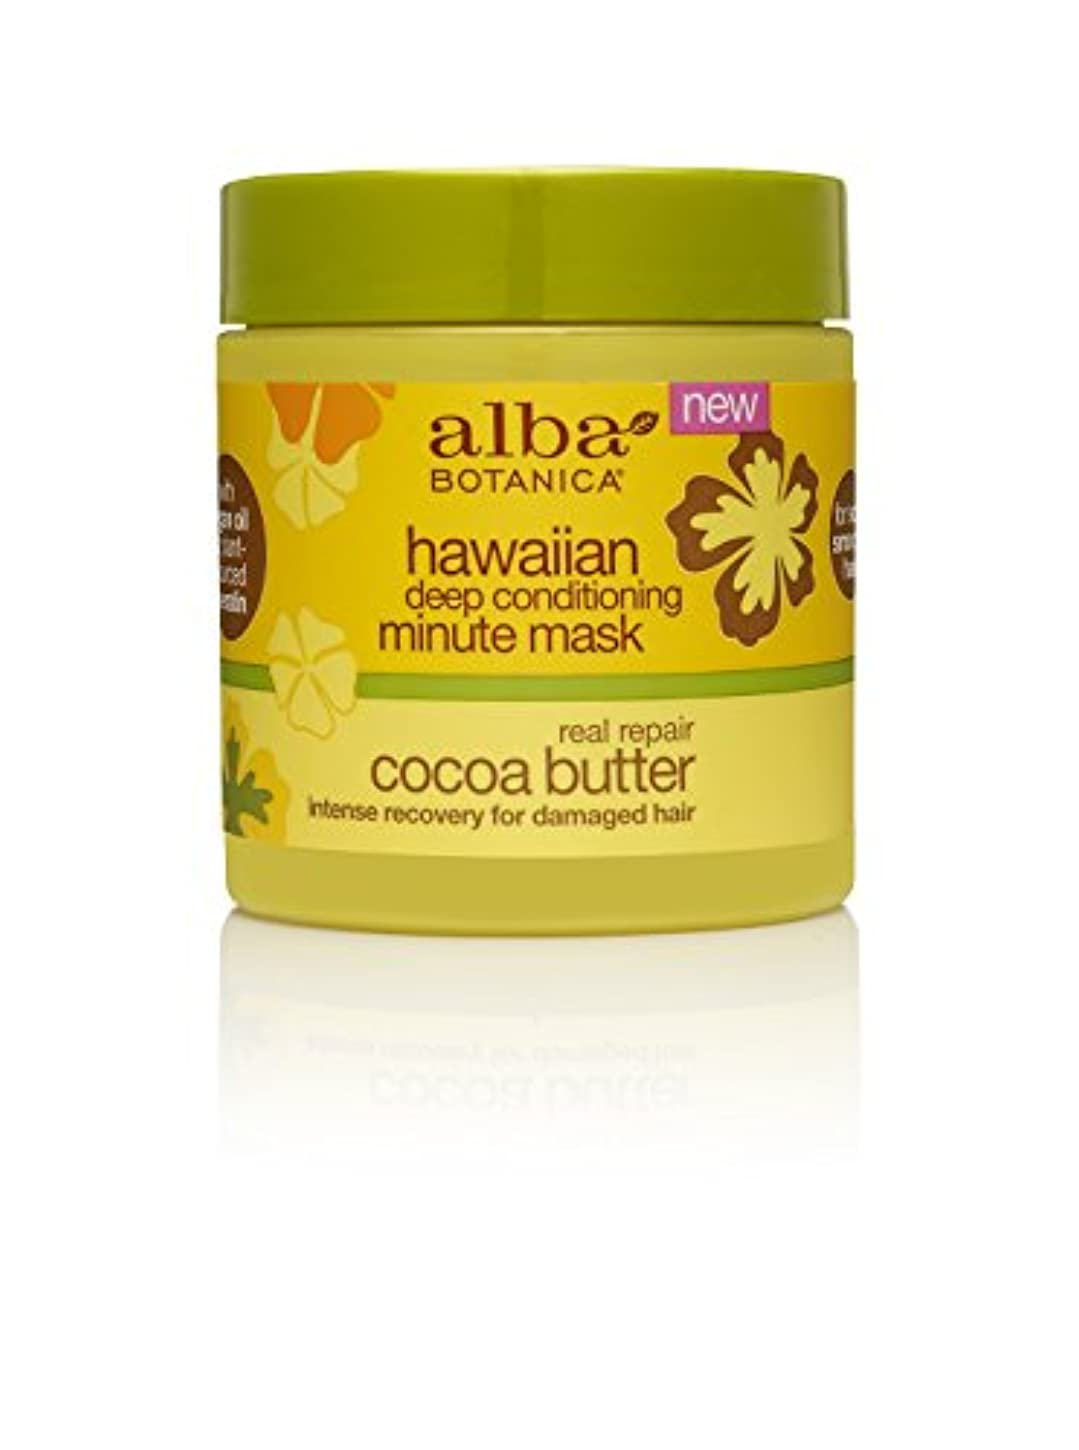 発送負担ヒューム海外直送品Hawaiian Deep Conditioning Real Repair Minute Mask, Cocoa Butter 5.5 oz by Alba Botanica